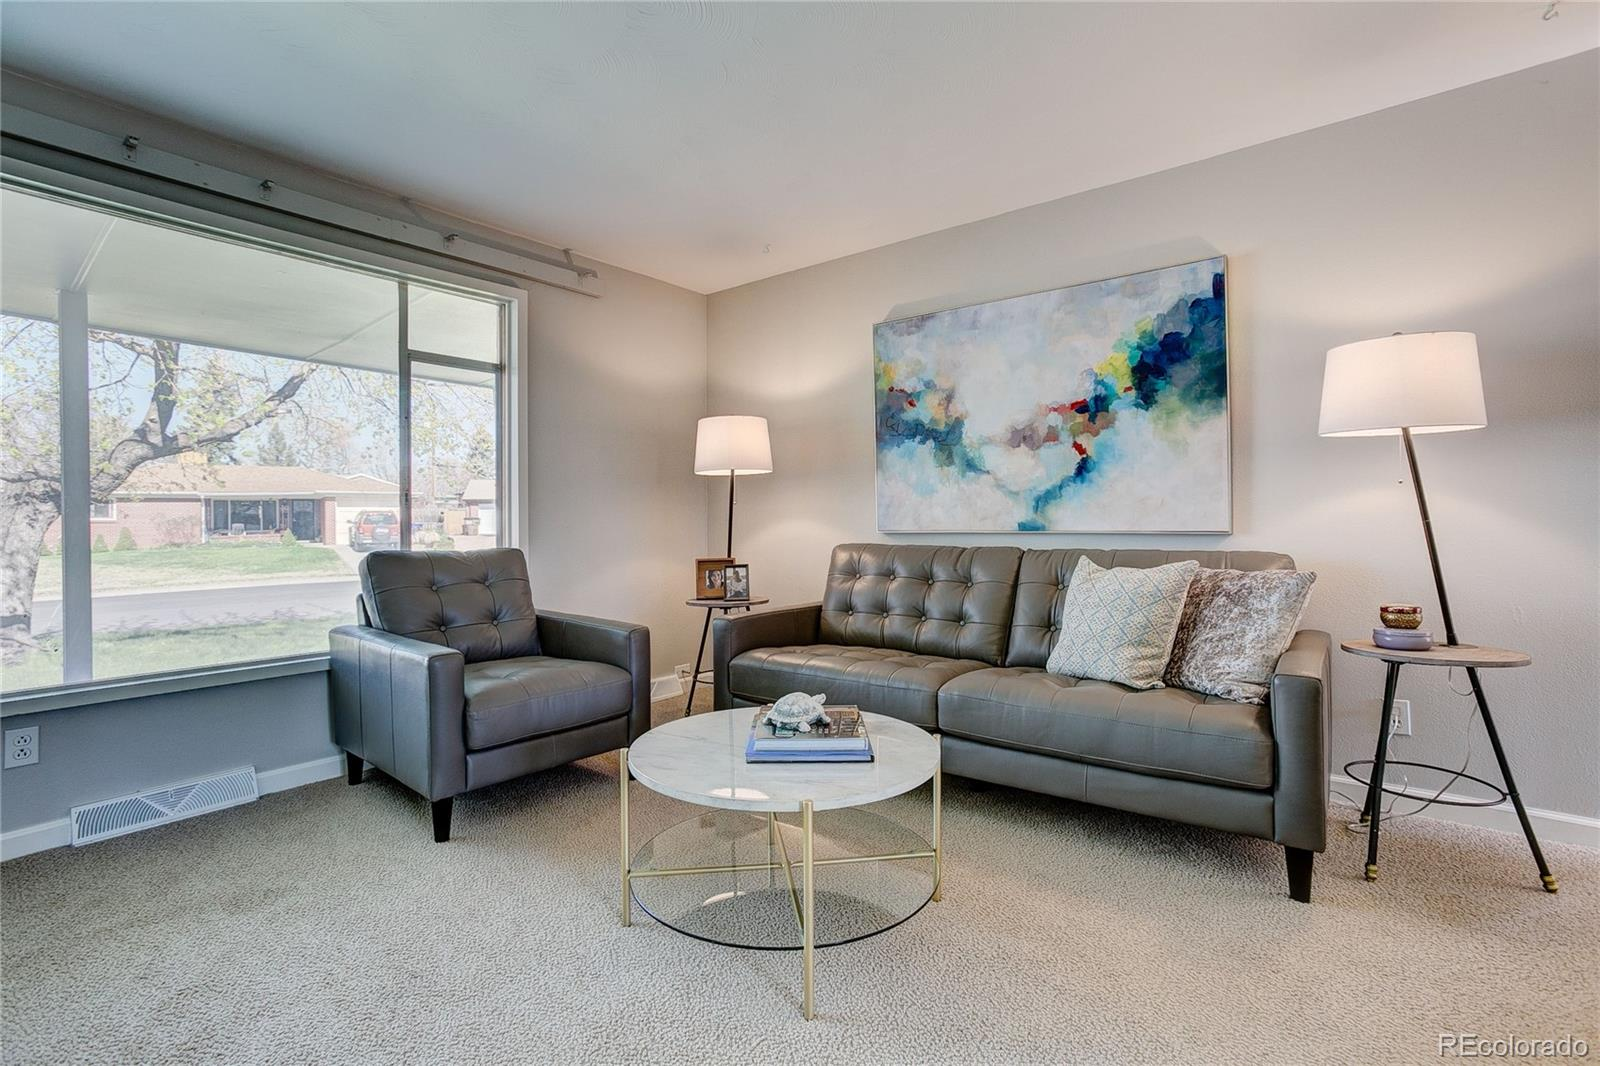 MLS# 9710462 - 5 - 1250 W 7th Ave Dr, Broomfield, CO 80020